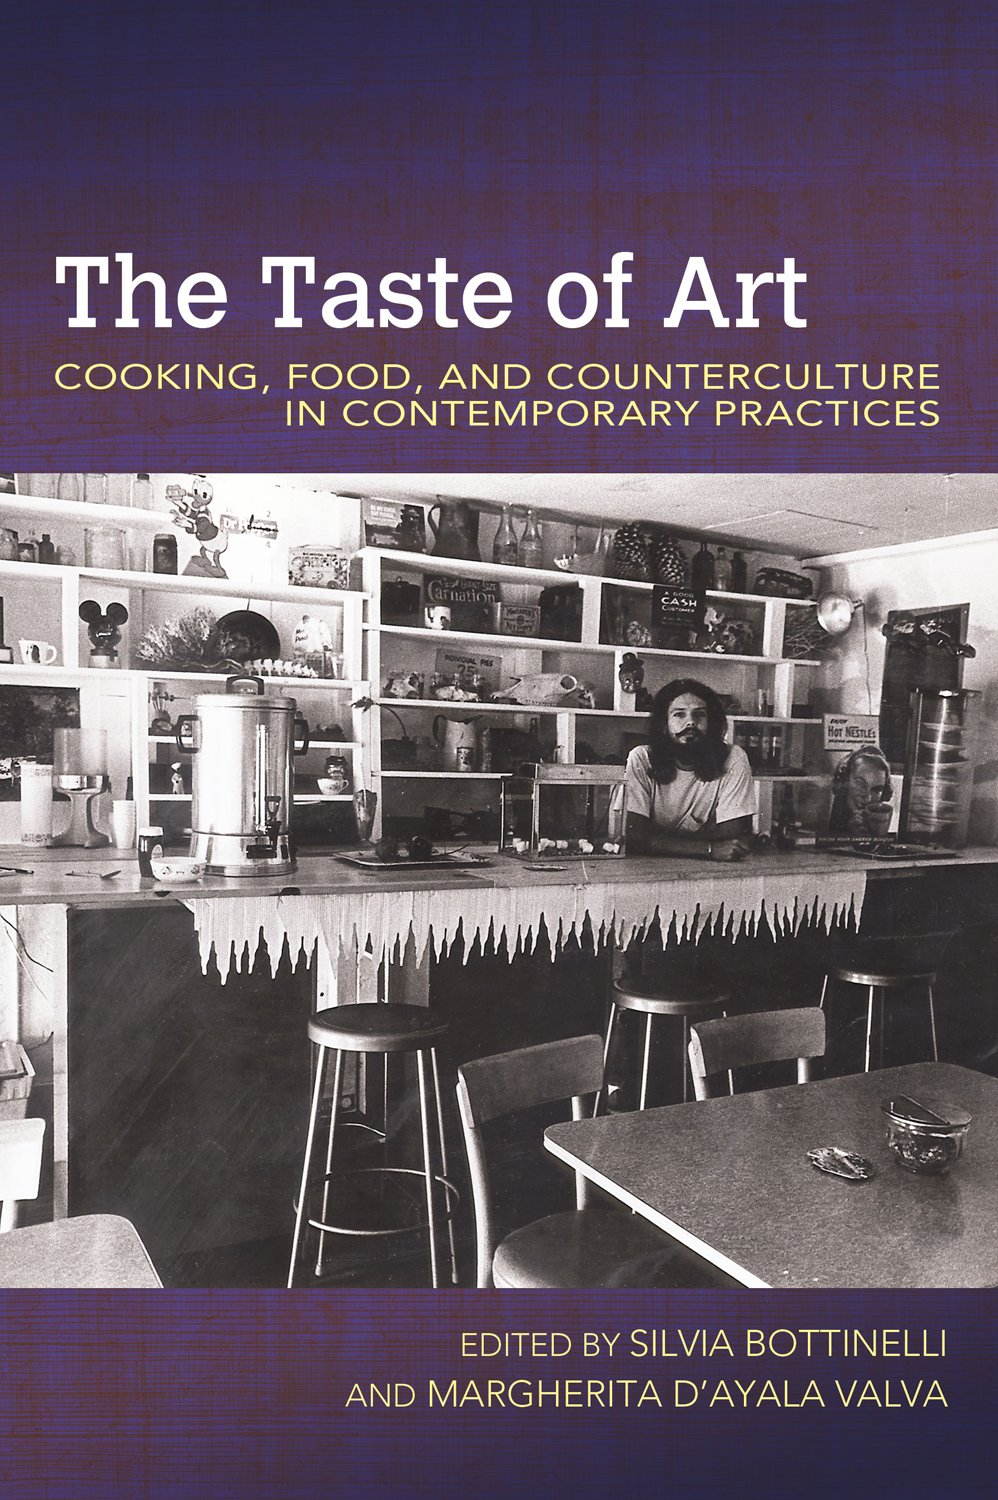 The Taste of Art: Cooking, Food, and Counterculture in Contemporary Practices (Food and Foodways) PDF